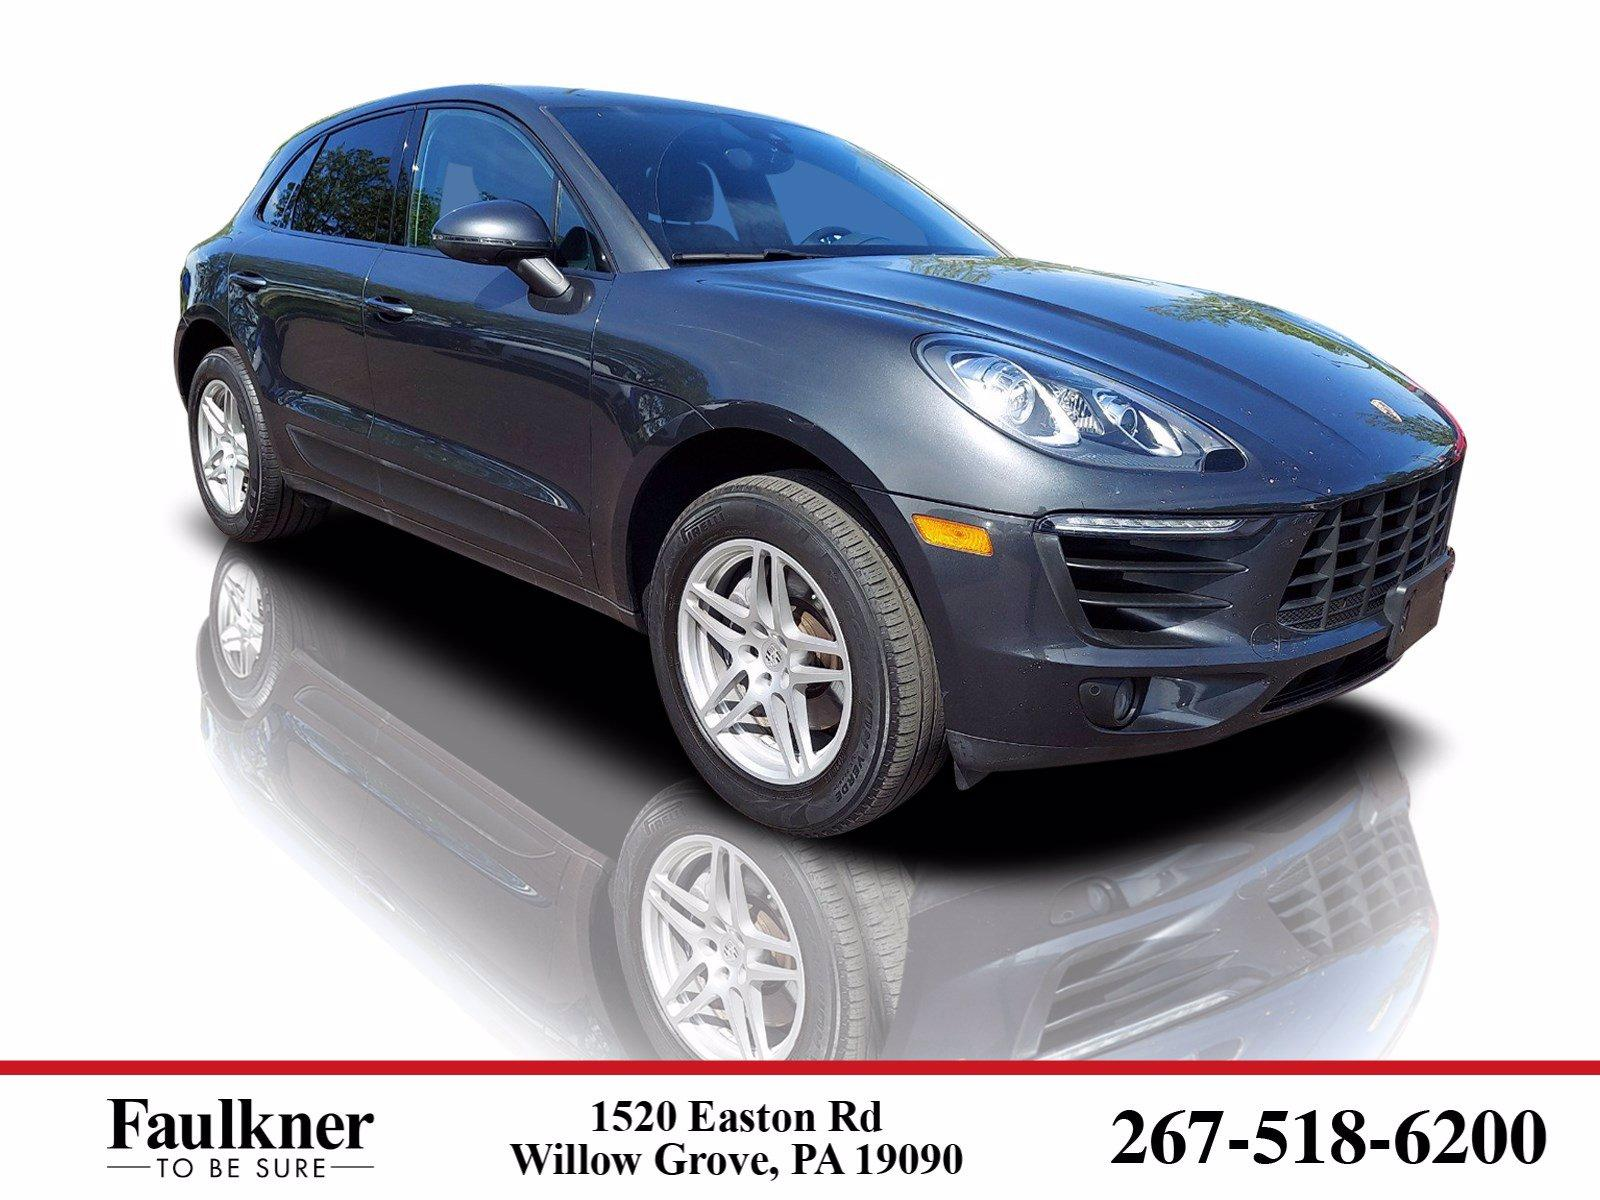 2018 Porsche Macan Vehicle Photo in Willow Grove, PA 19090